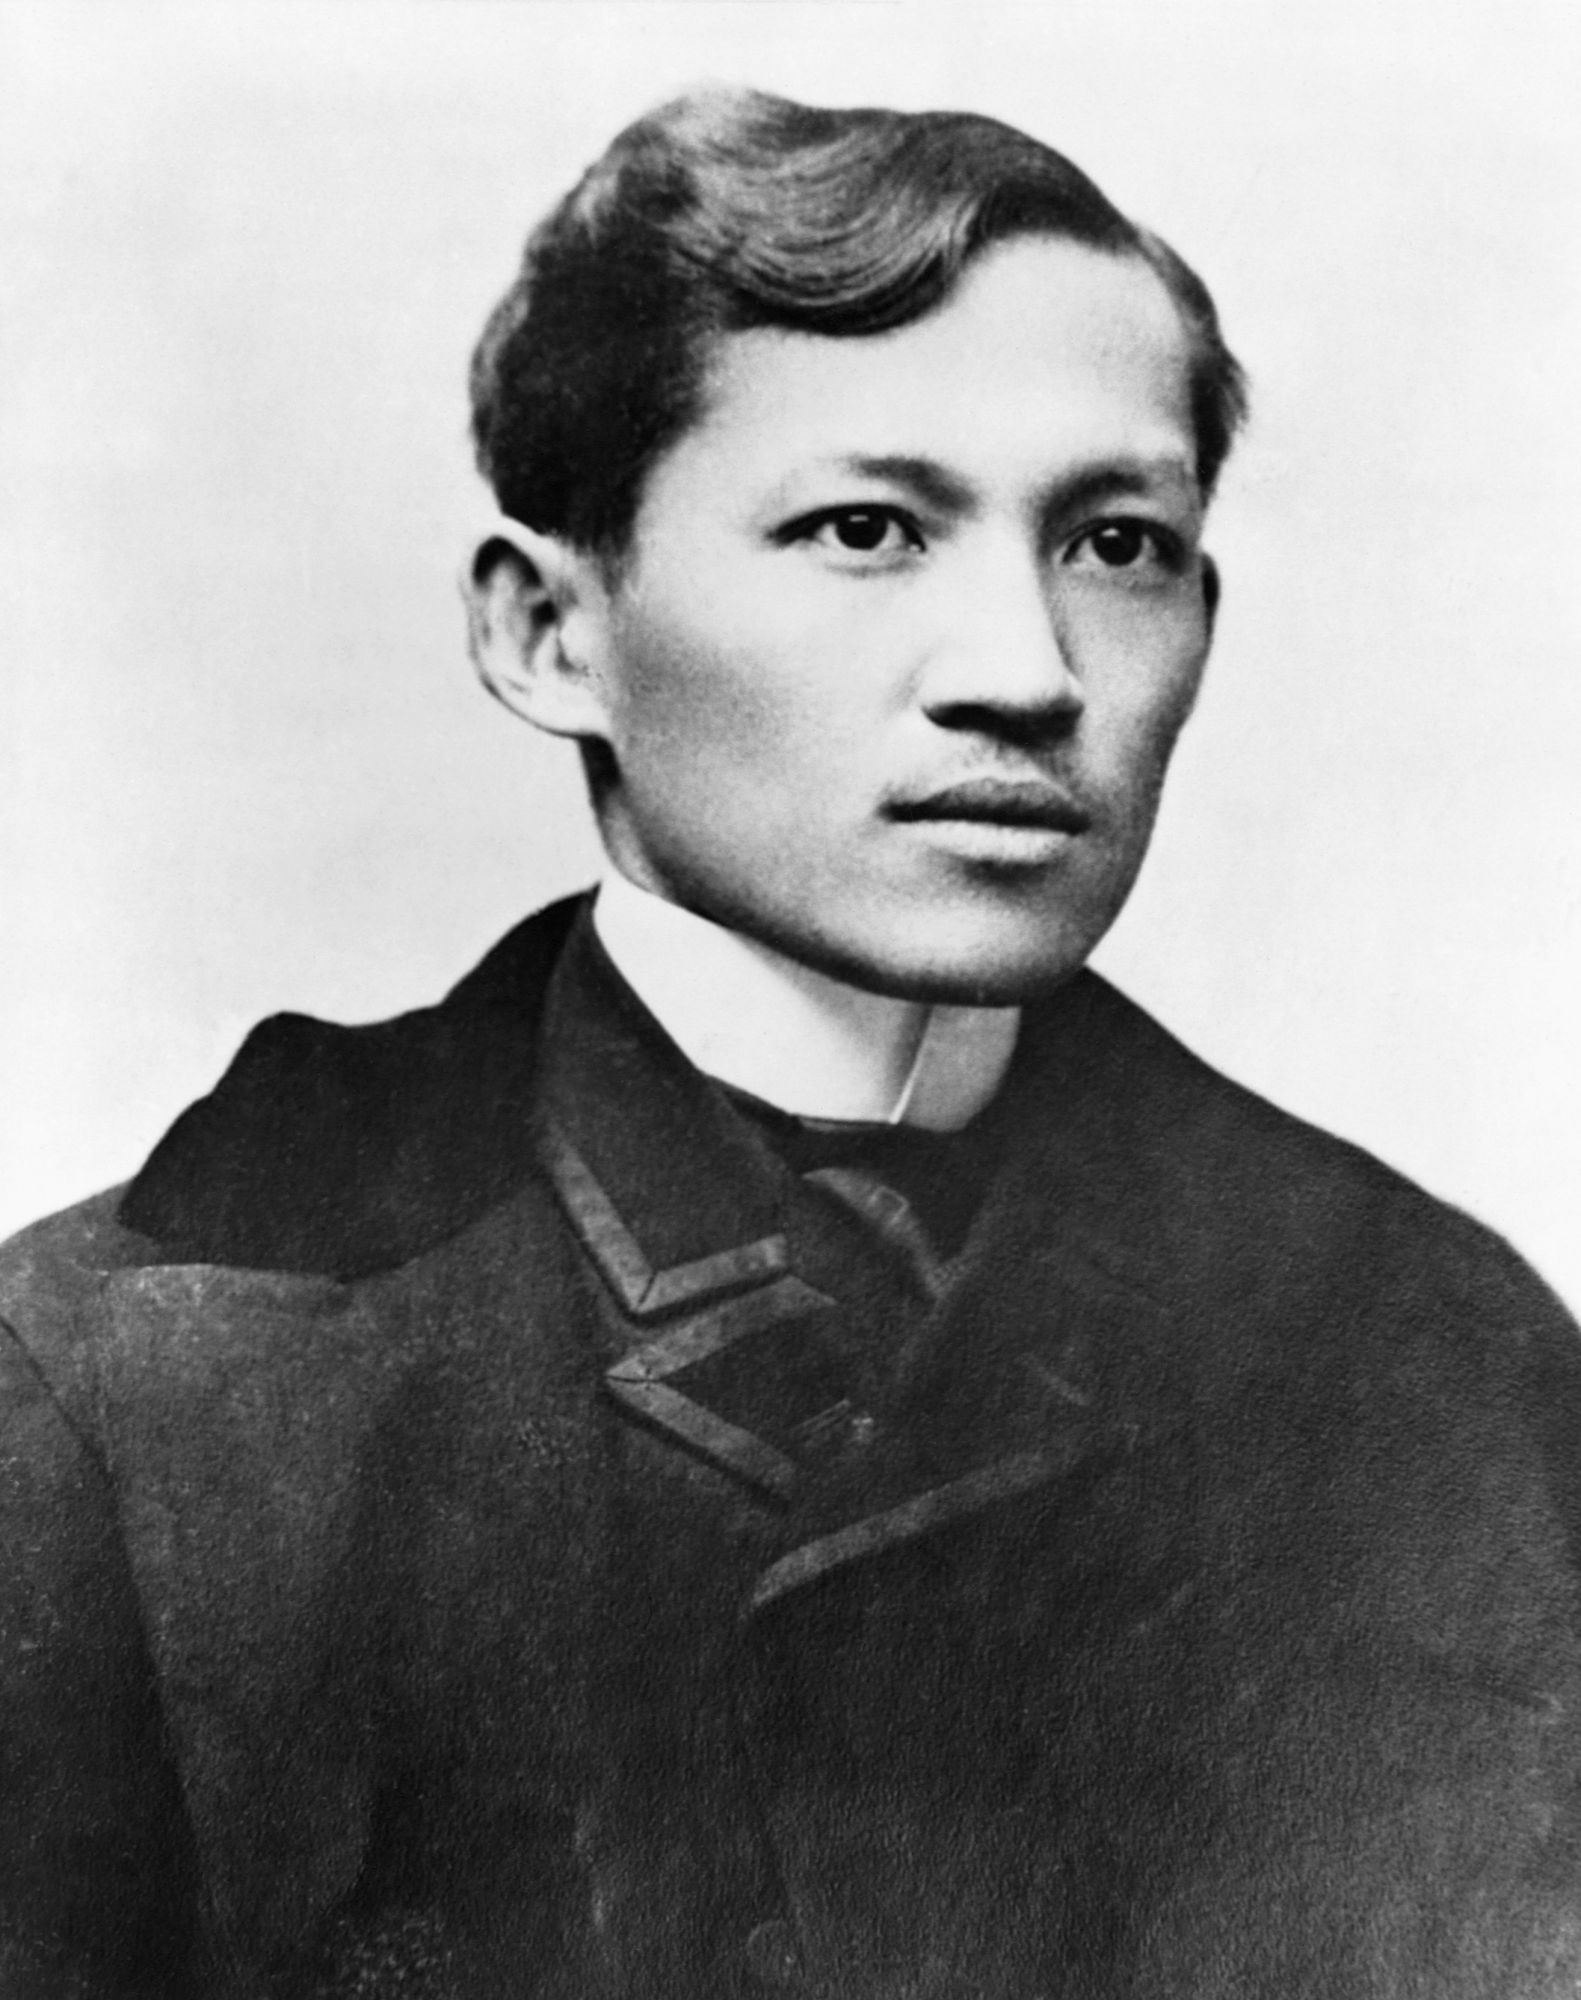 Jose Rizal (1861-1896), Philippine patriot and writer. He advocated reformation of Spanish rule, and was a national hero of the Philippines. He was executed upon his return from exile. (Photo by © CORBIS/Corbis via Getty Images)